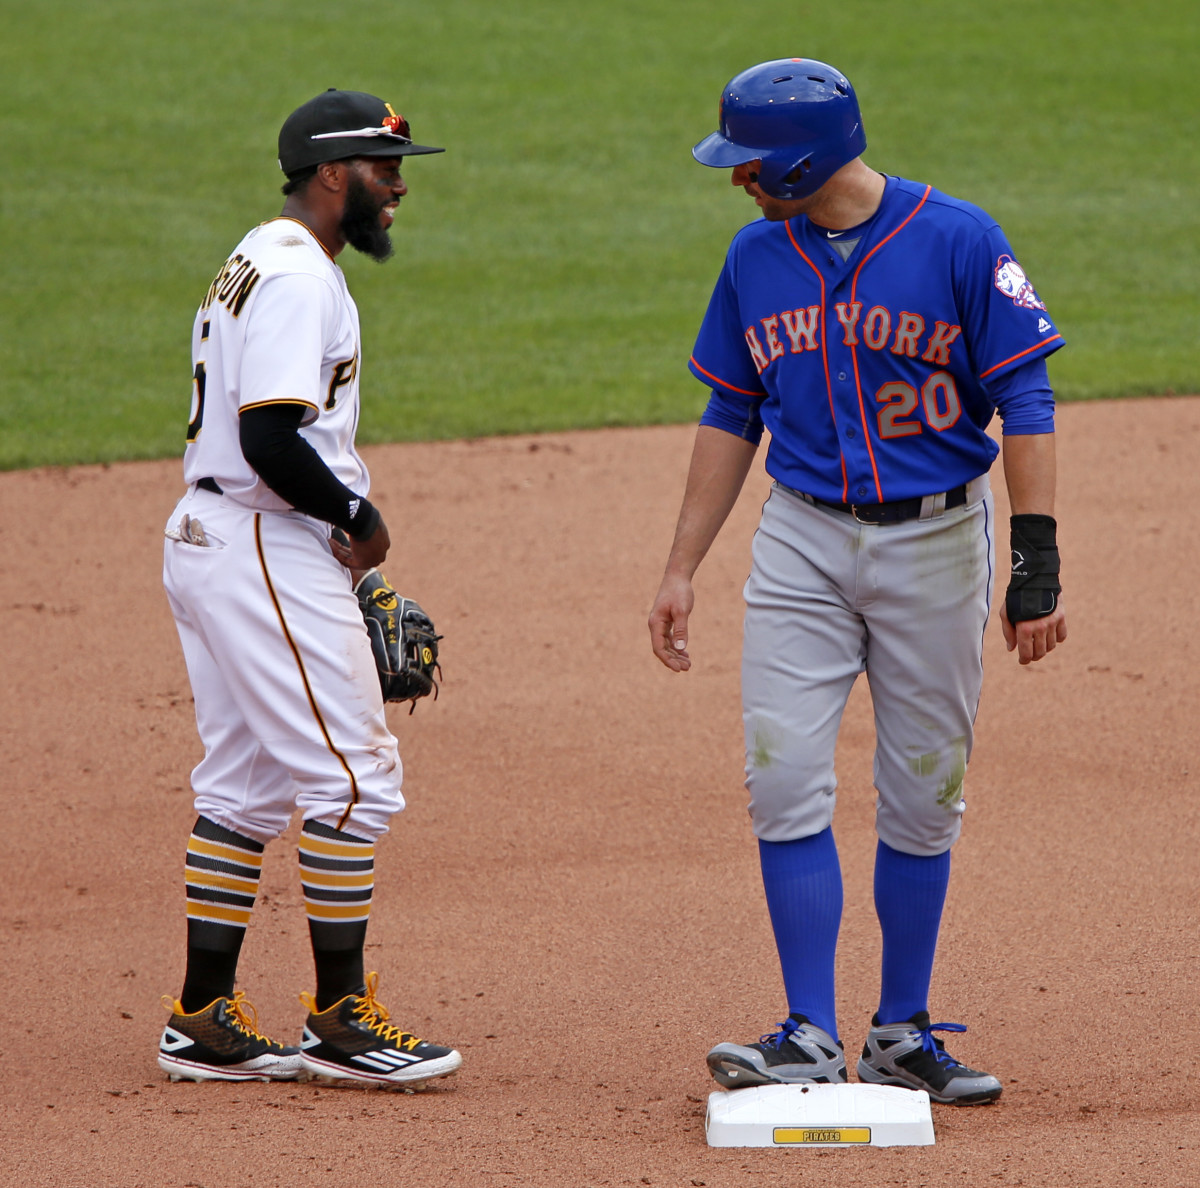 Former teammates New York Mets second baseman Neil Walker (20) and Pittsburgh Pirates second baseman Josh Harrison visit during the fourth inning of a baseball game in Pittsburgh, Tuesday, June 7, 2016. (AP Photo/Gene J. Puskar)